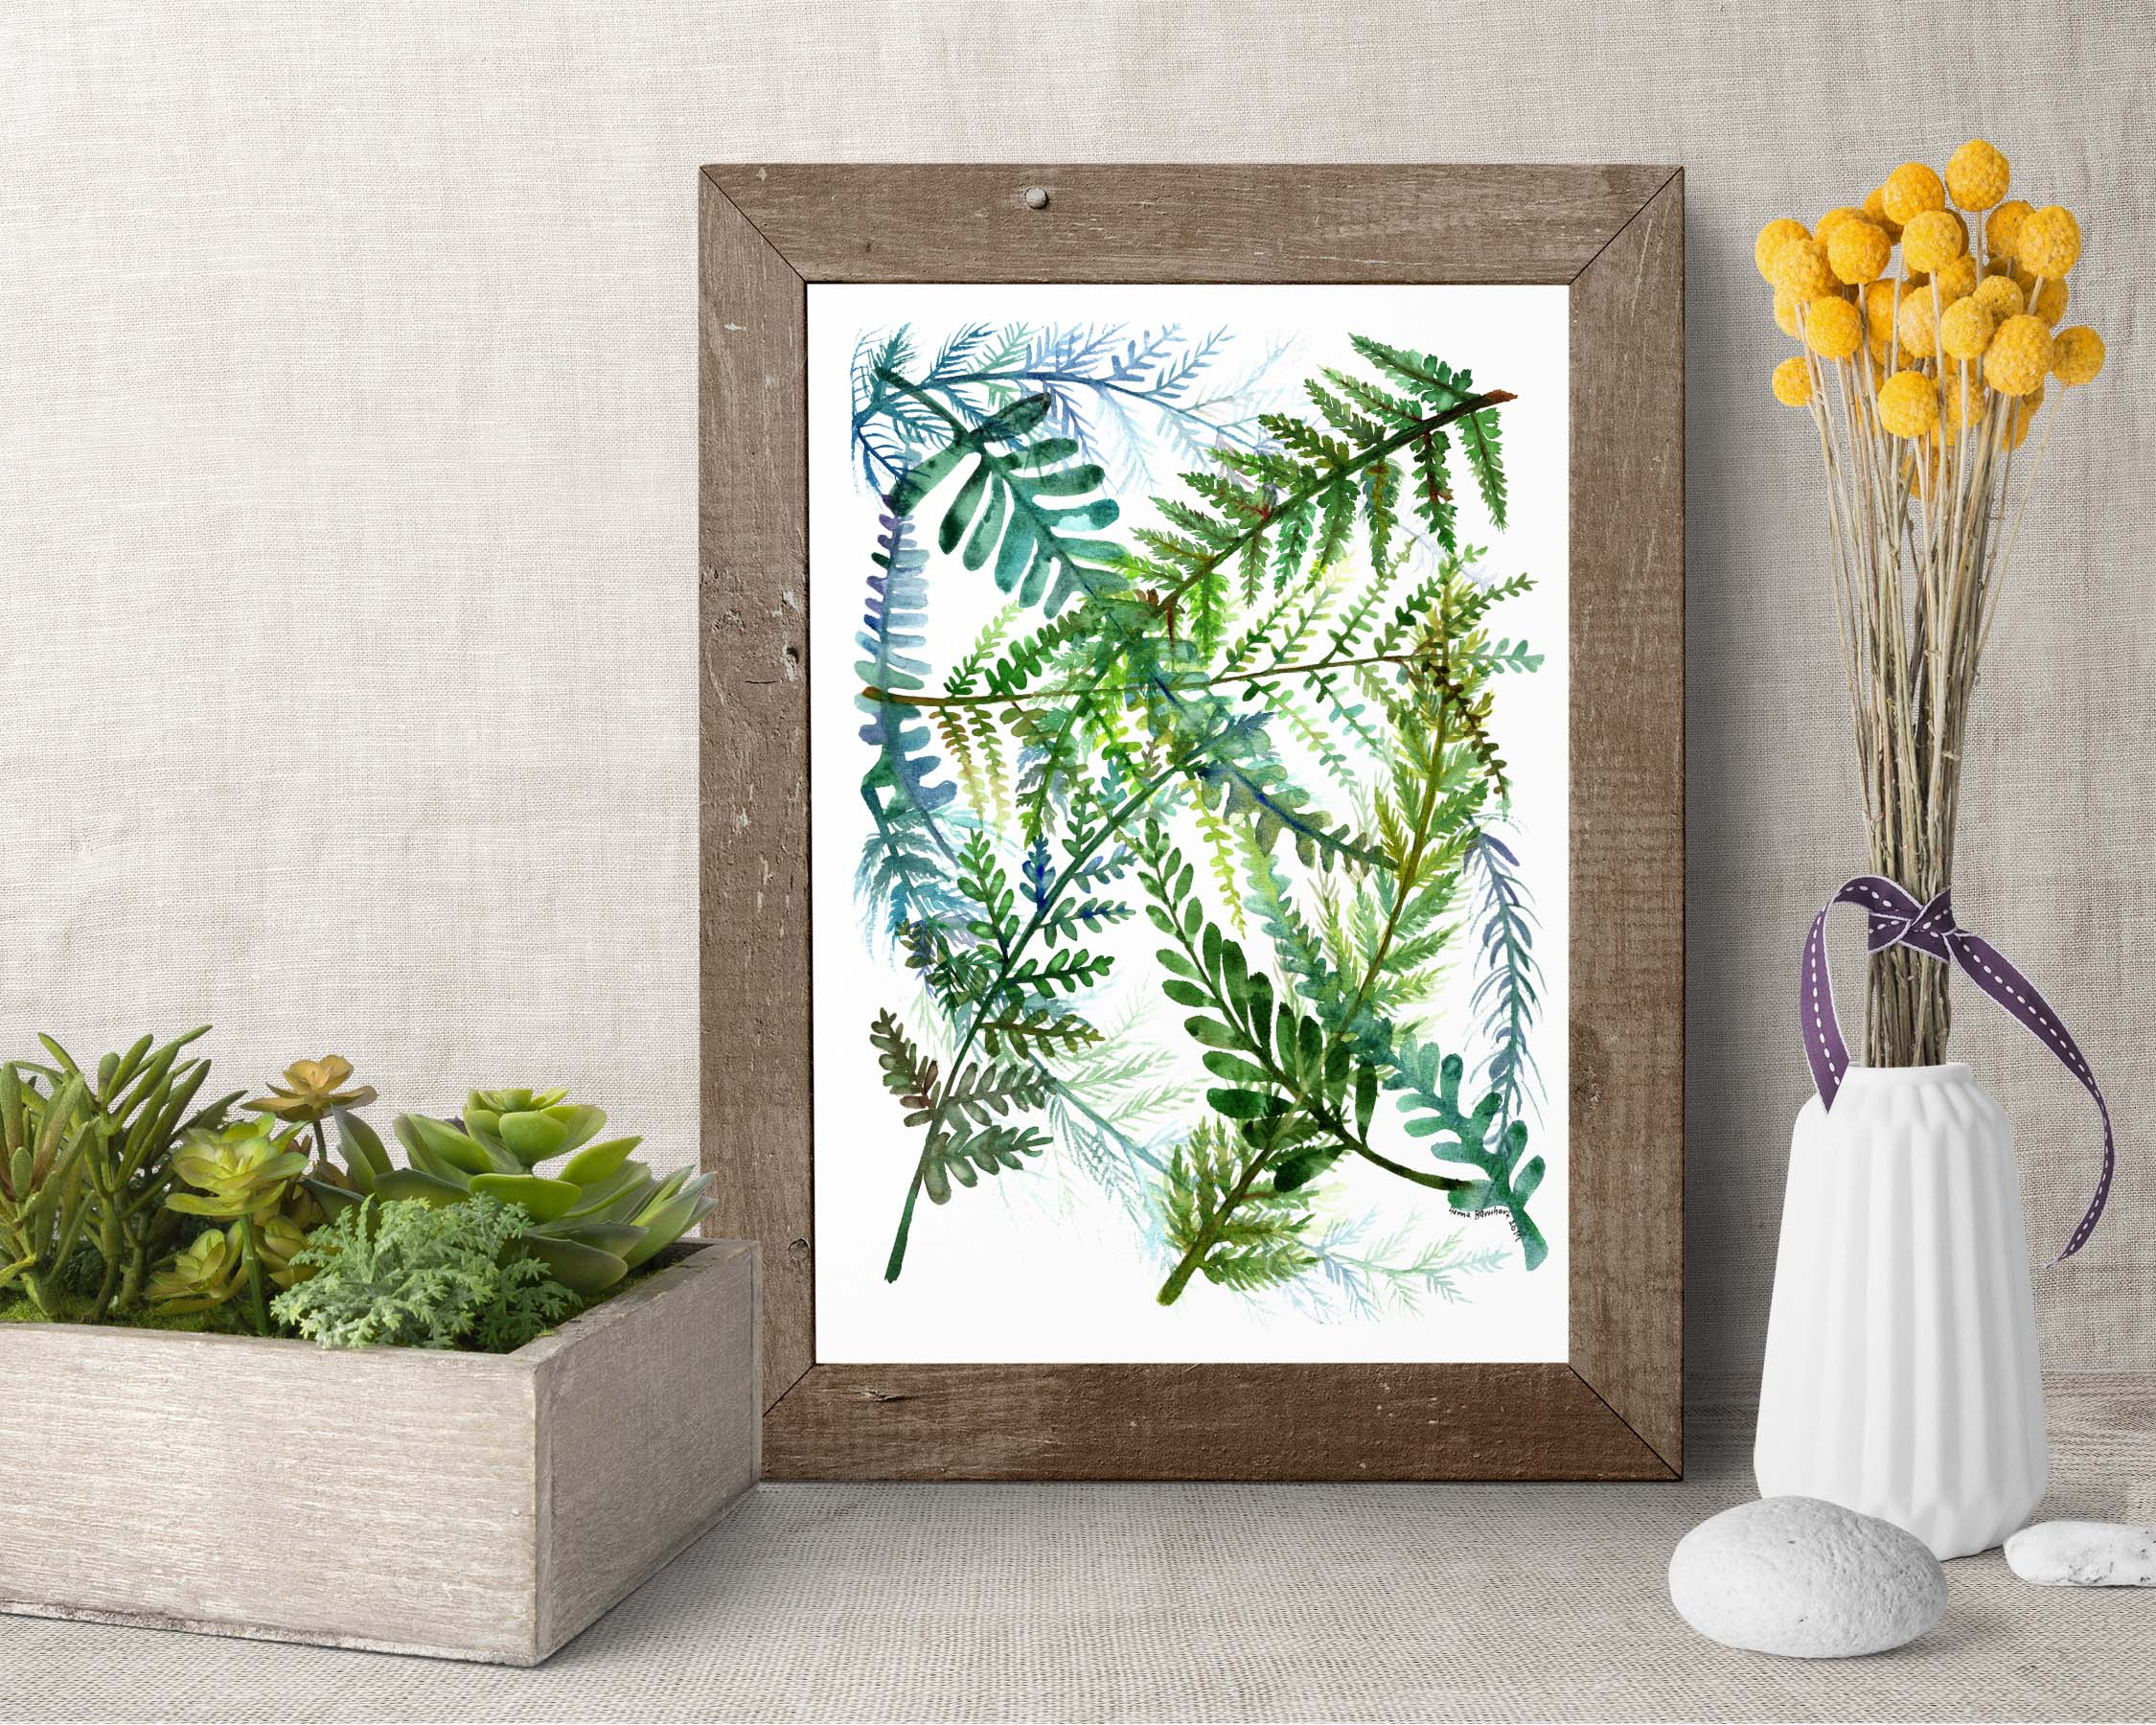 Watercolor Fern Print wood frame